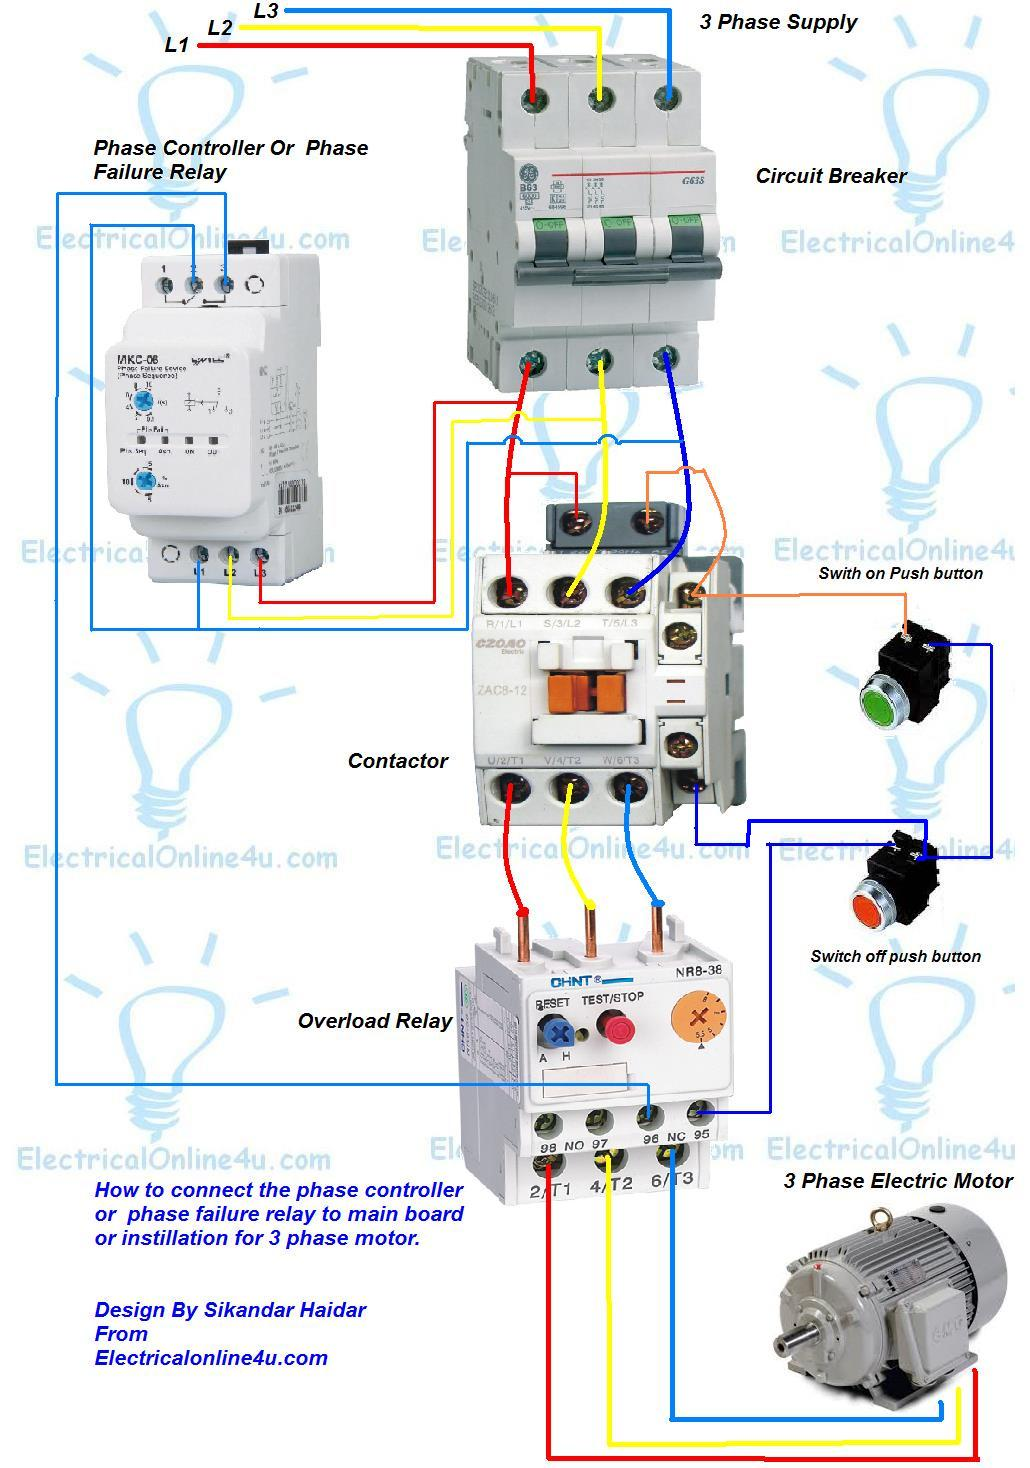 Phase%2Bfailure%2Brelay%2B %2Bphase%2Bcontroller%2Binstilaion%2Bin%2B3%2Bphase%2BMain%2Bboard%2Bor%2Bfor%2B3%2Bphase%2Bmotor phase controller wiring phase failure relay diagram electrical controller wire diagram for 3246e2 lift at metegol.co